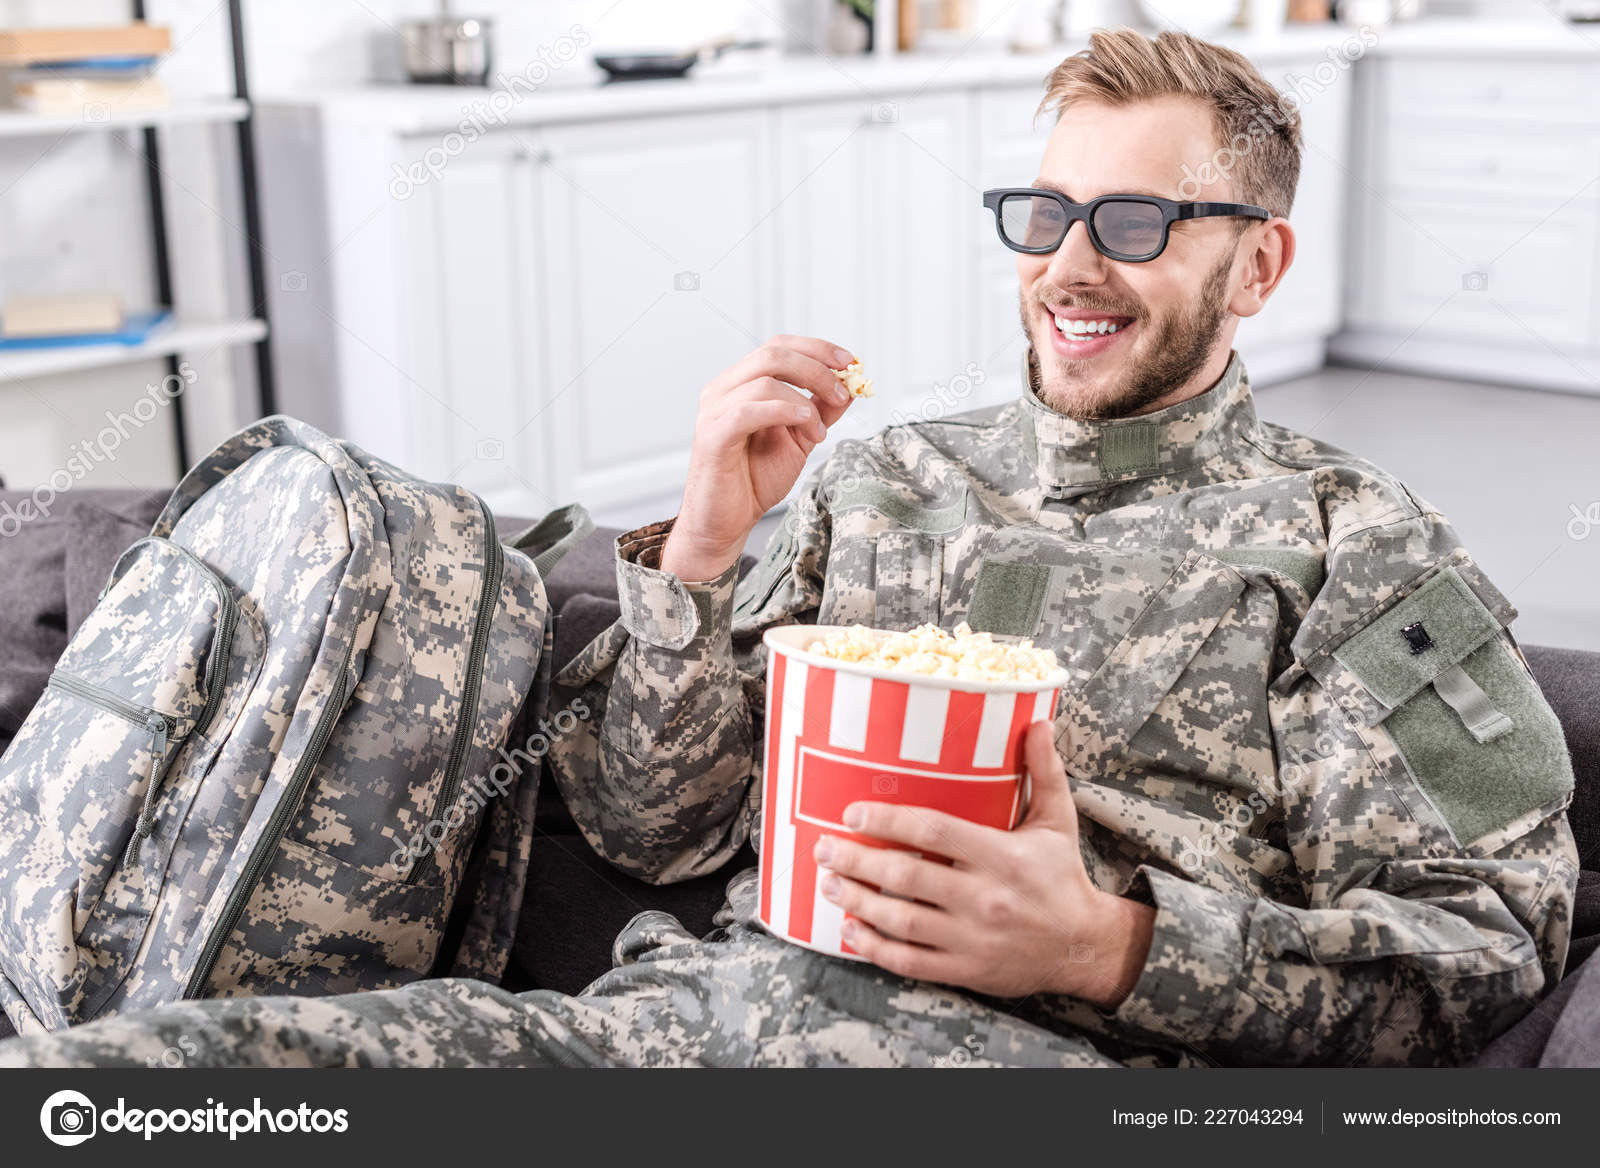 072d6fb88a Smiling Soldier Military Uniform Wearing Glasses Eating Popcorn Watching  Movie — Stock Photo